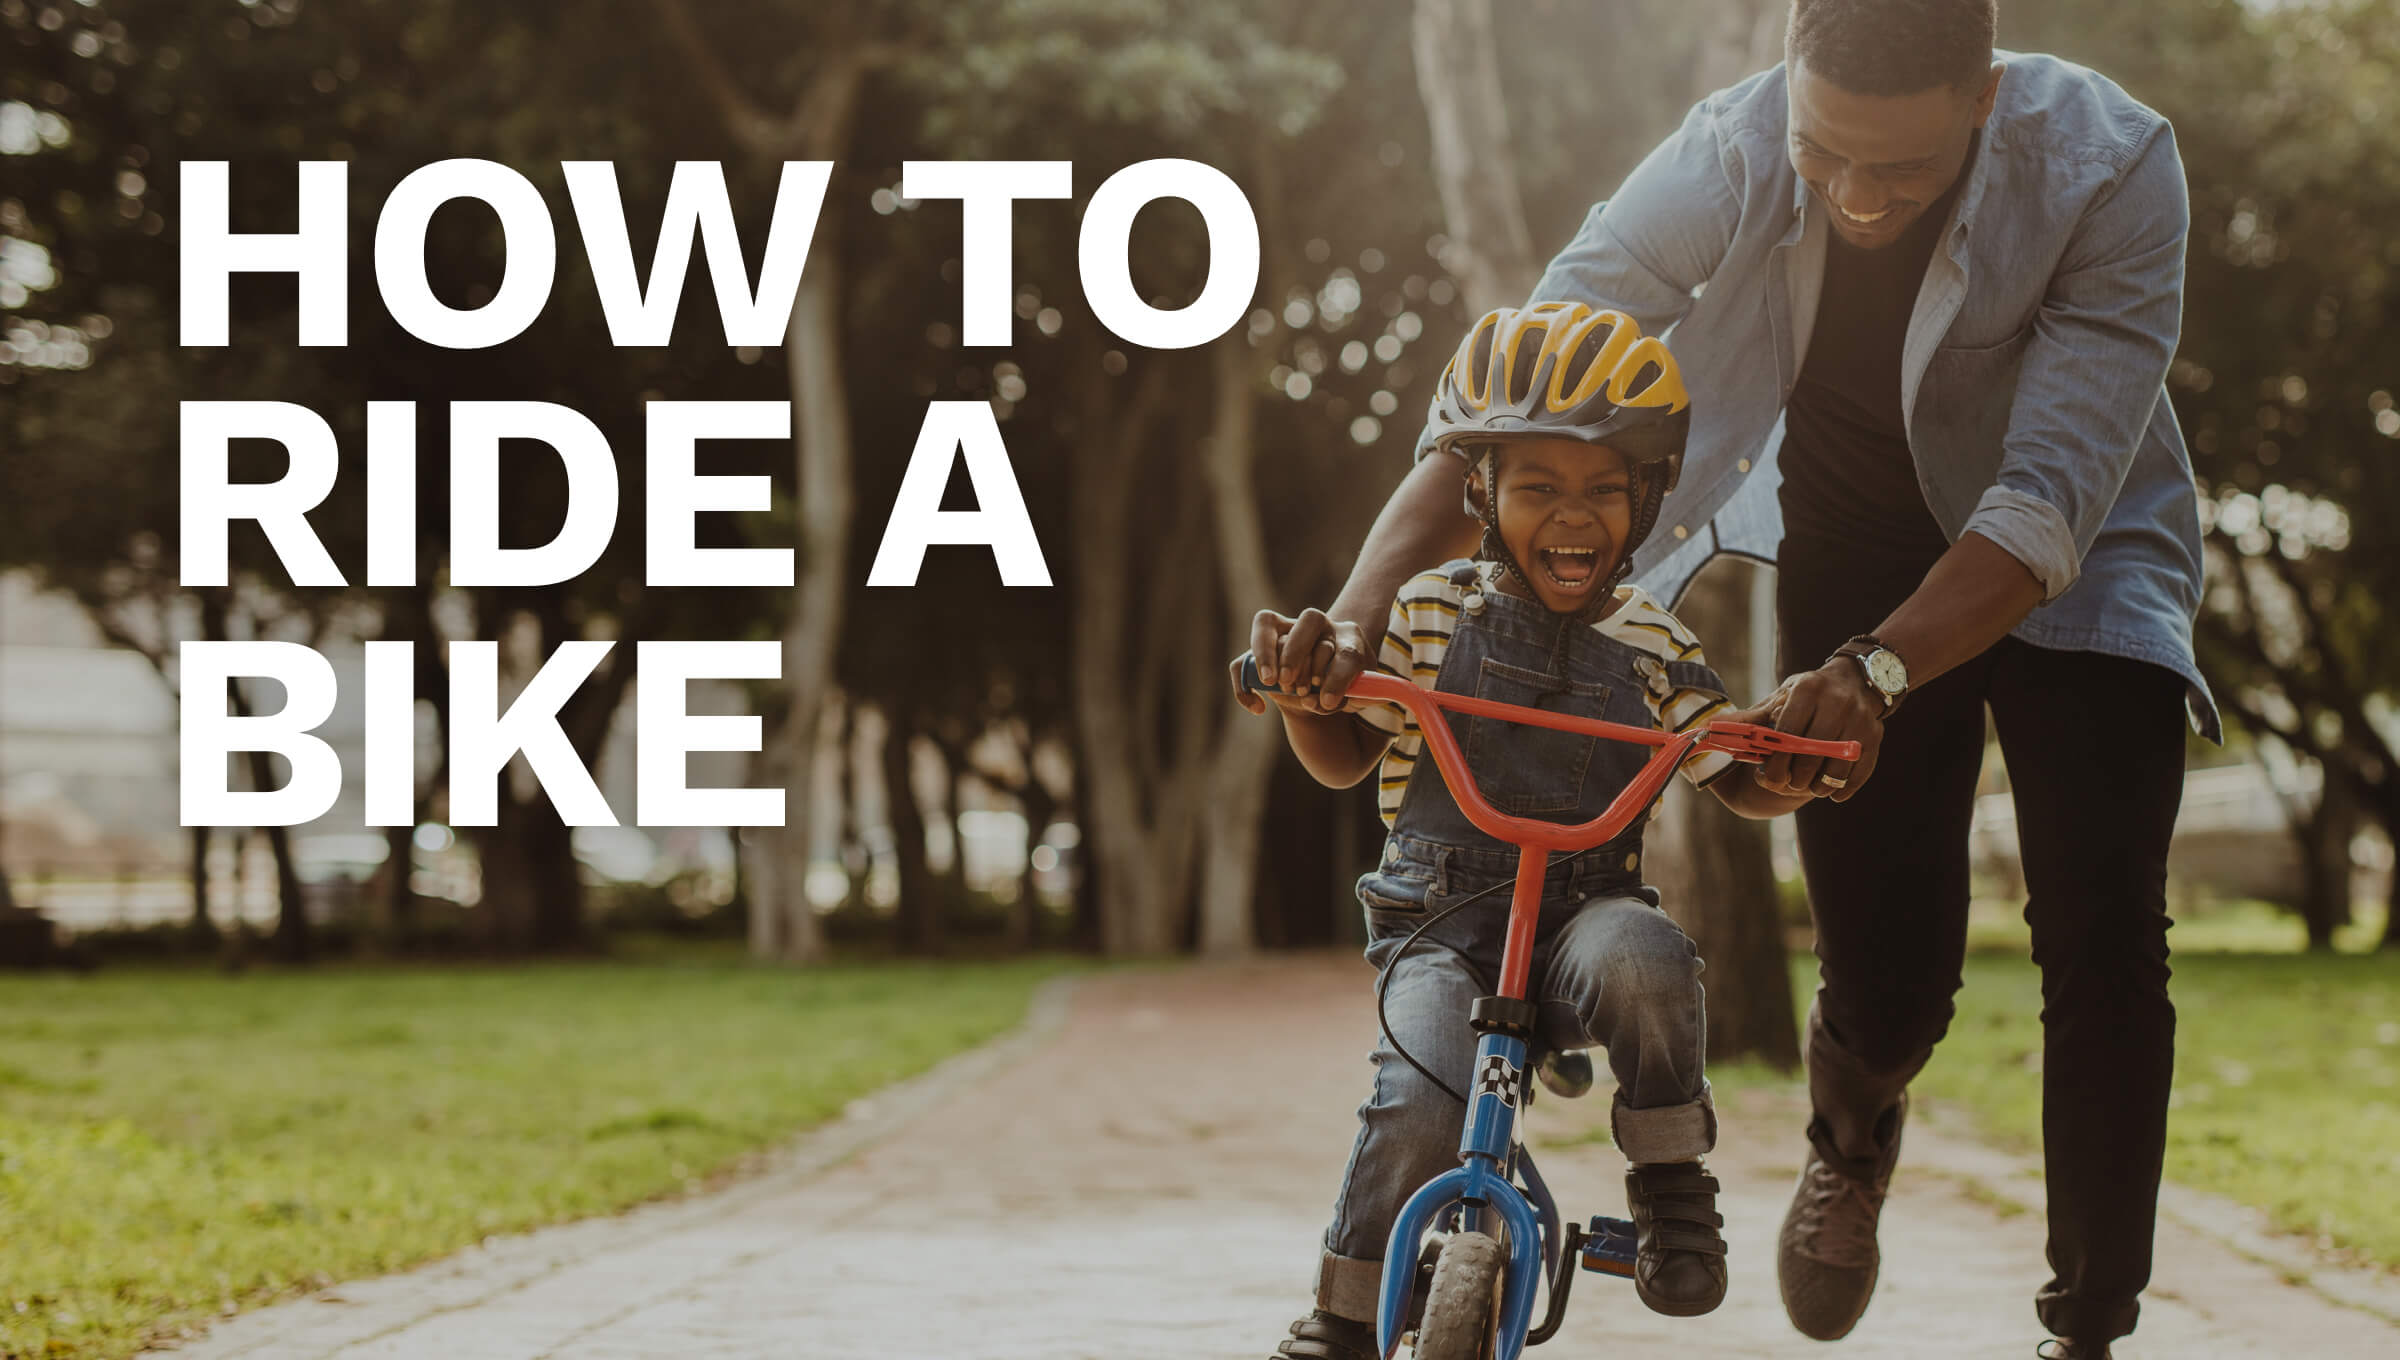 How to Ride a Bike